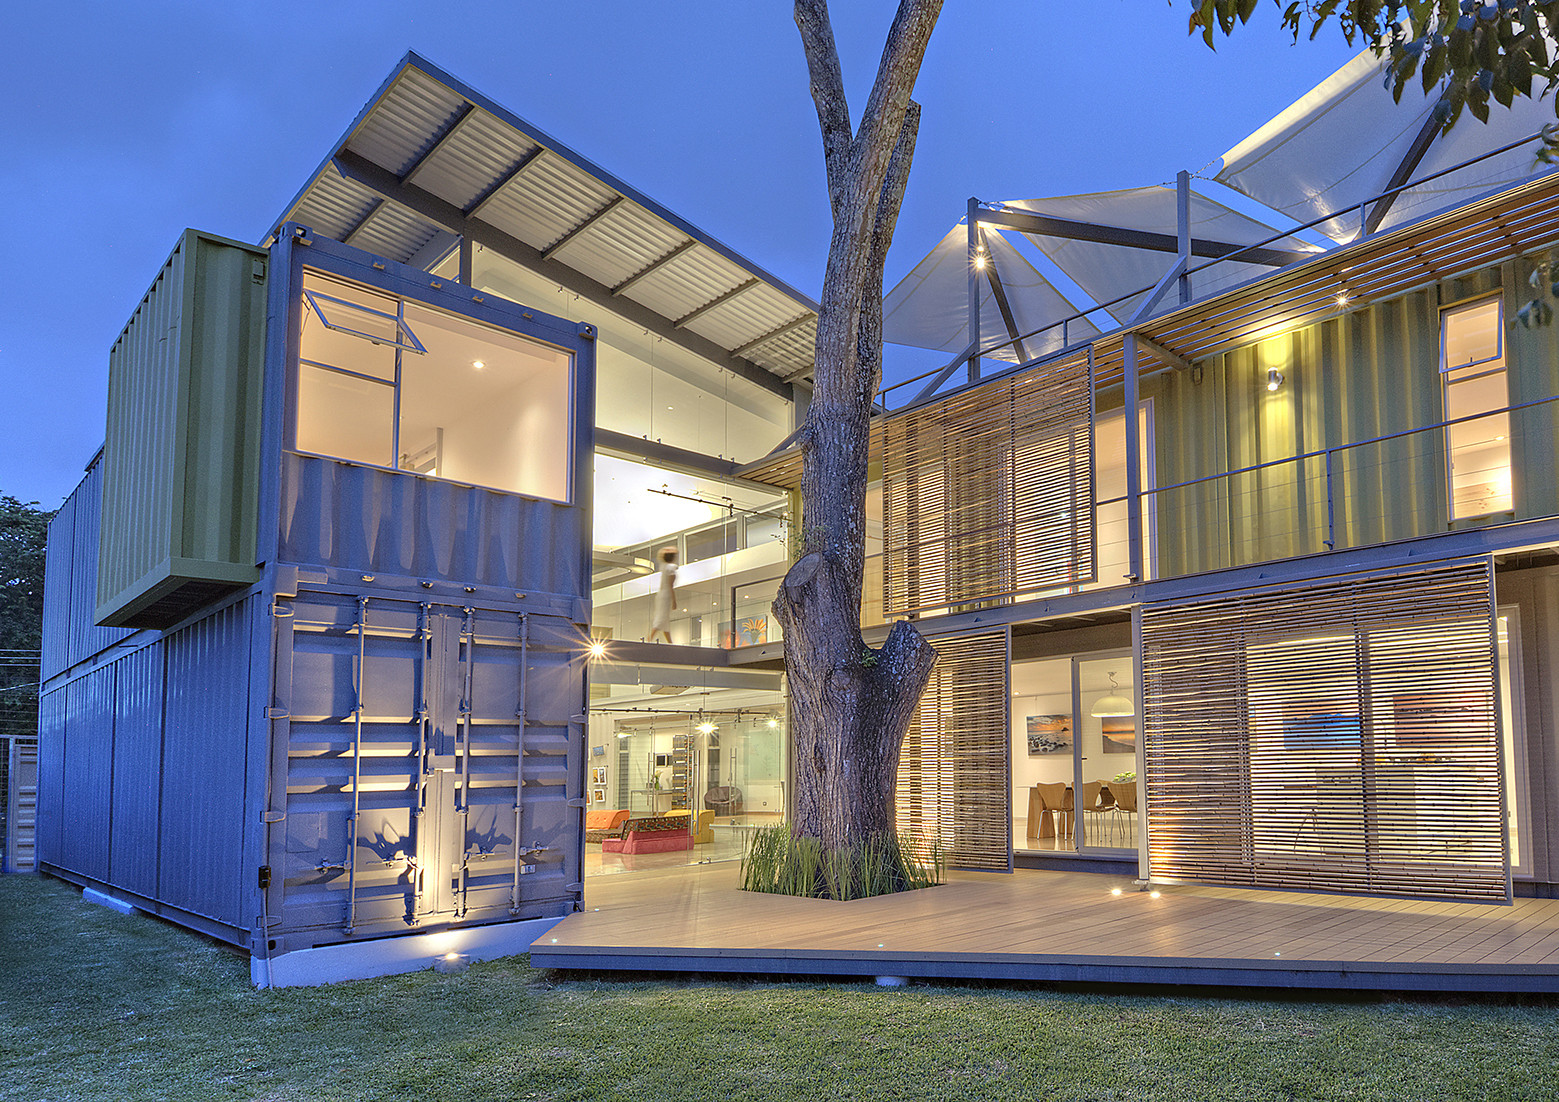 11 tips you need to know before building a shipping container home